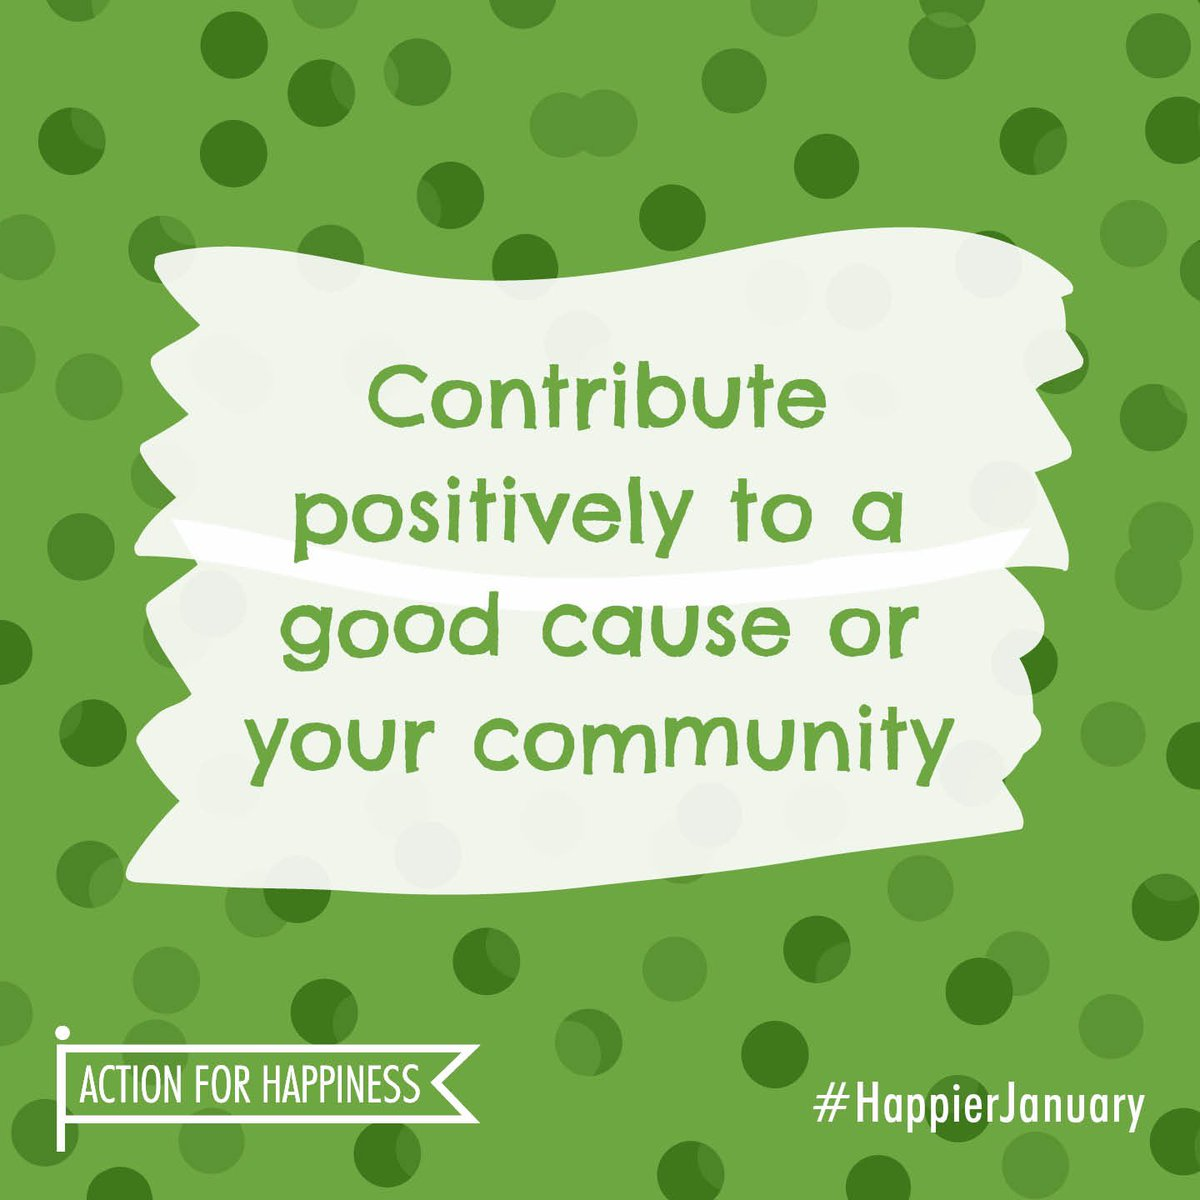 Happier January - Day 17: Contribute positively to a good cause or your community  #HappierJanuary